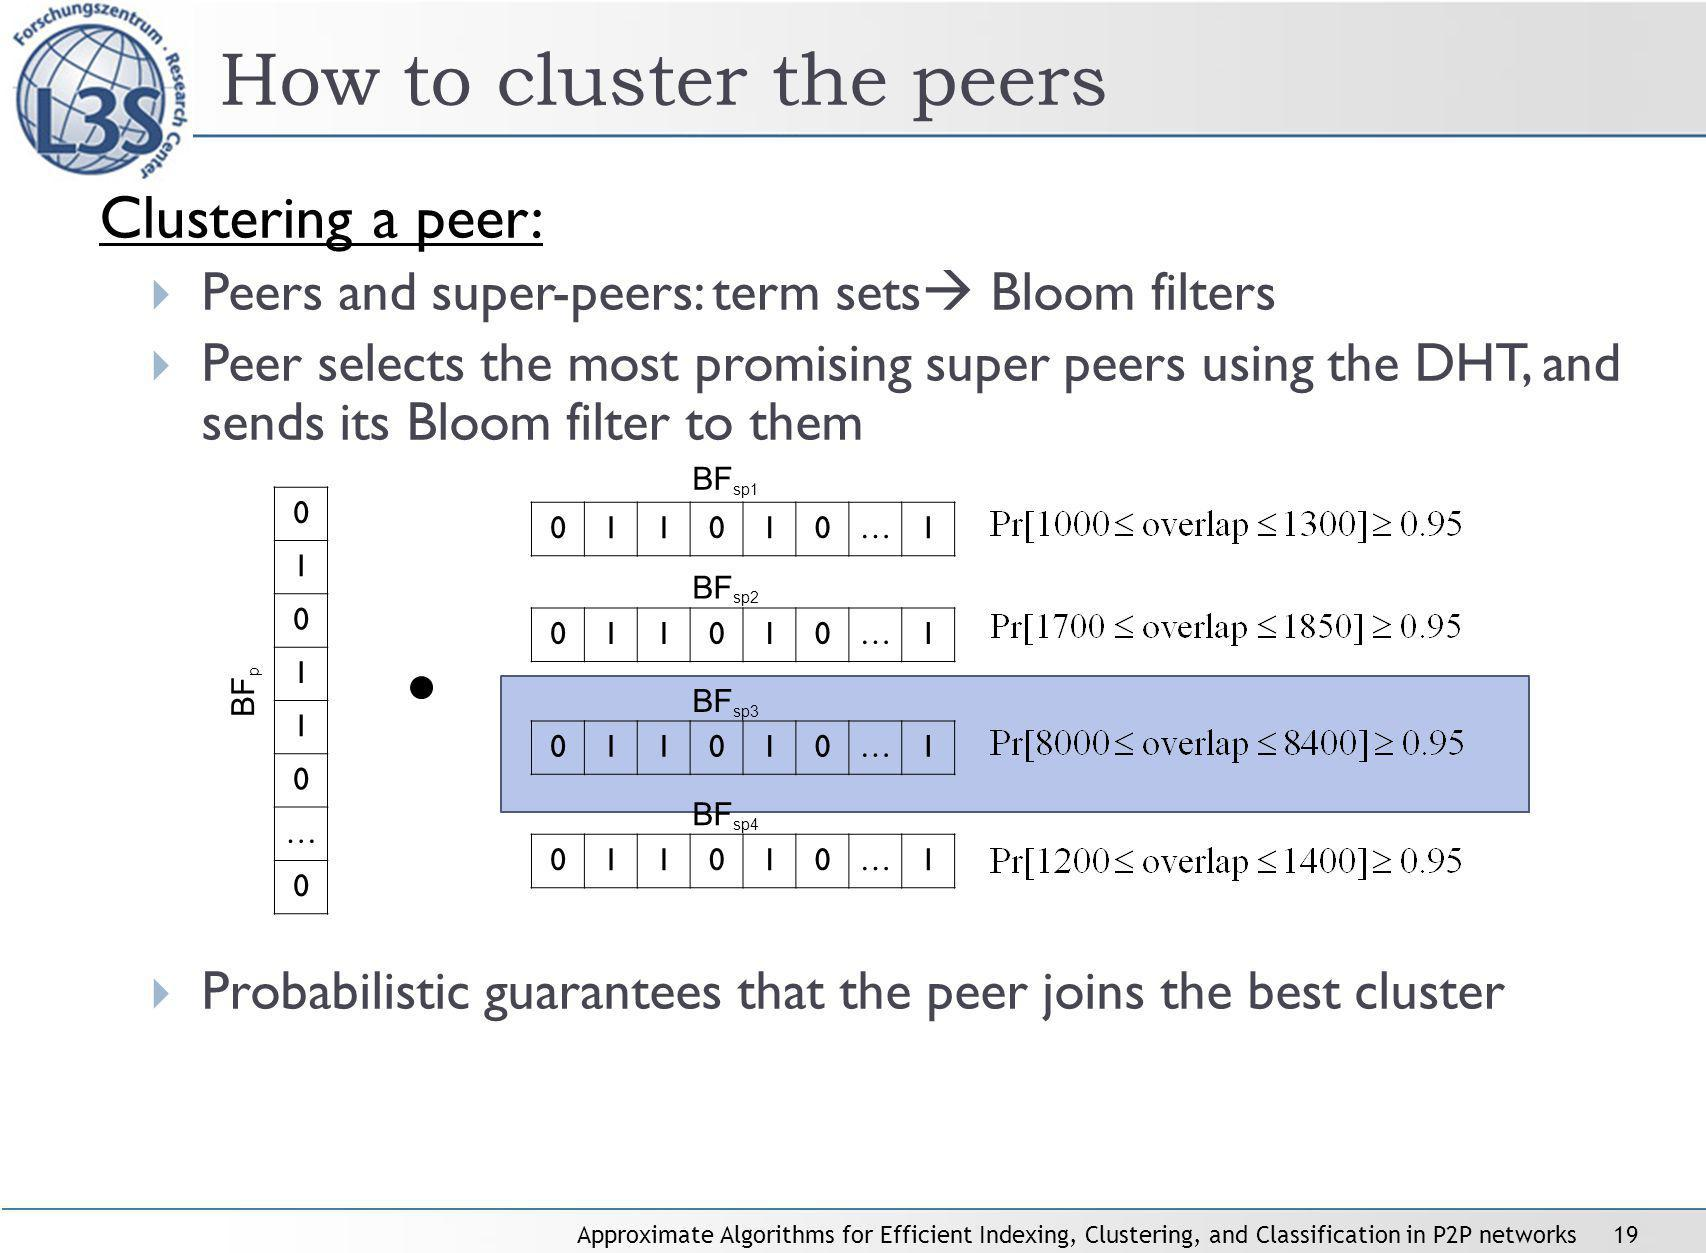 Approximate Algorithms for Efficient Indexing, Clustering, and Classification in P2P networks19 Clustering a peer: Peers and super-peers: term sets Bloom filters Peer selects the most promising super peers using the DHT, and sends its Bloom filter to them Probabilistic guarantees that the peer joins the best cluster How to cluster the peers … … … … …1 BF p BF sp1 BF sp2 BF sp3 BF sp4